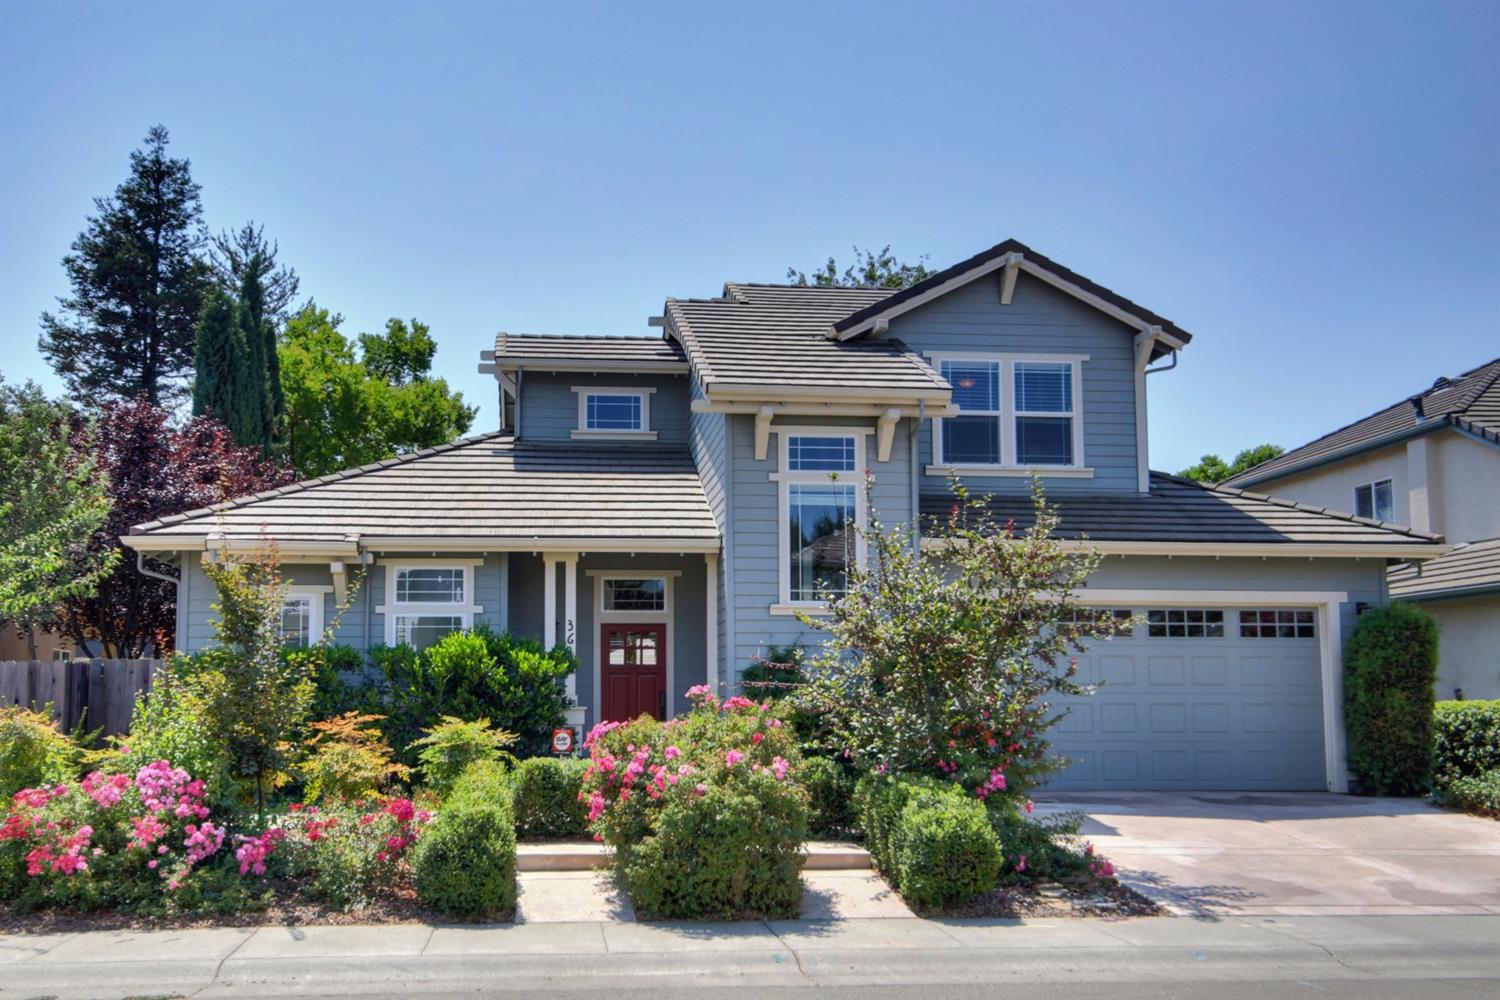 $825,000 - 3Br/3Ba -  for Sale in Willow Creek, Davis